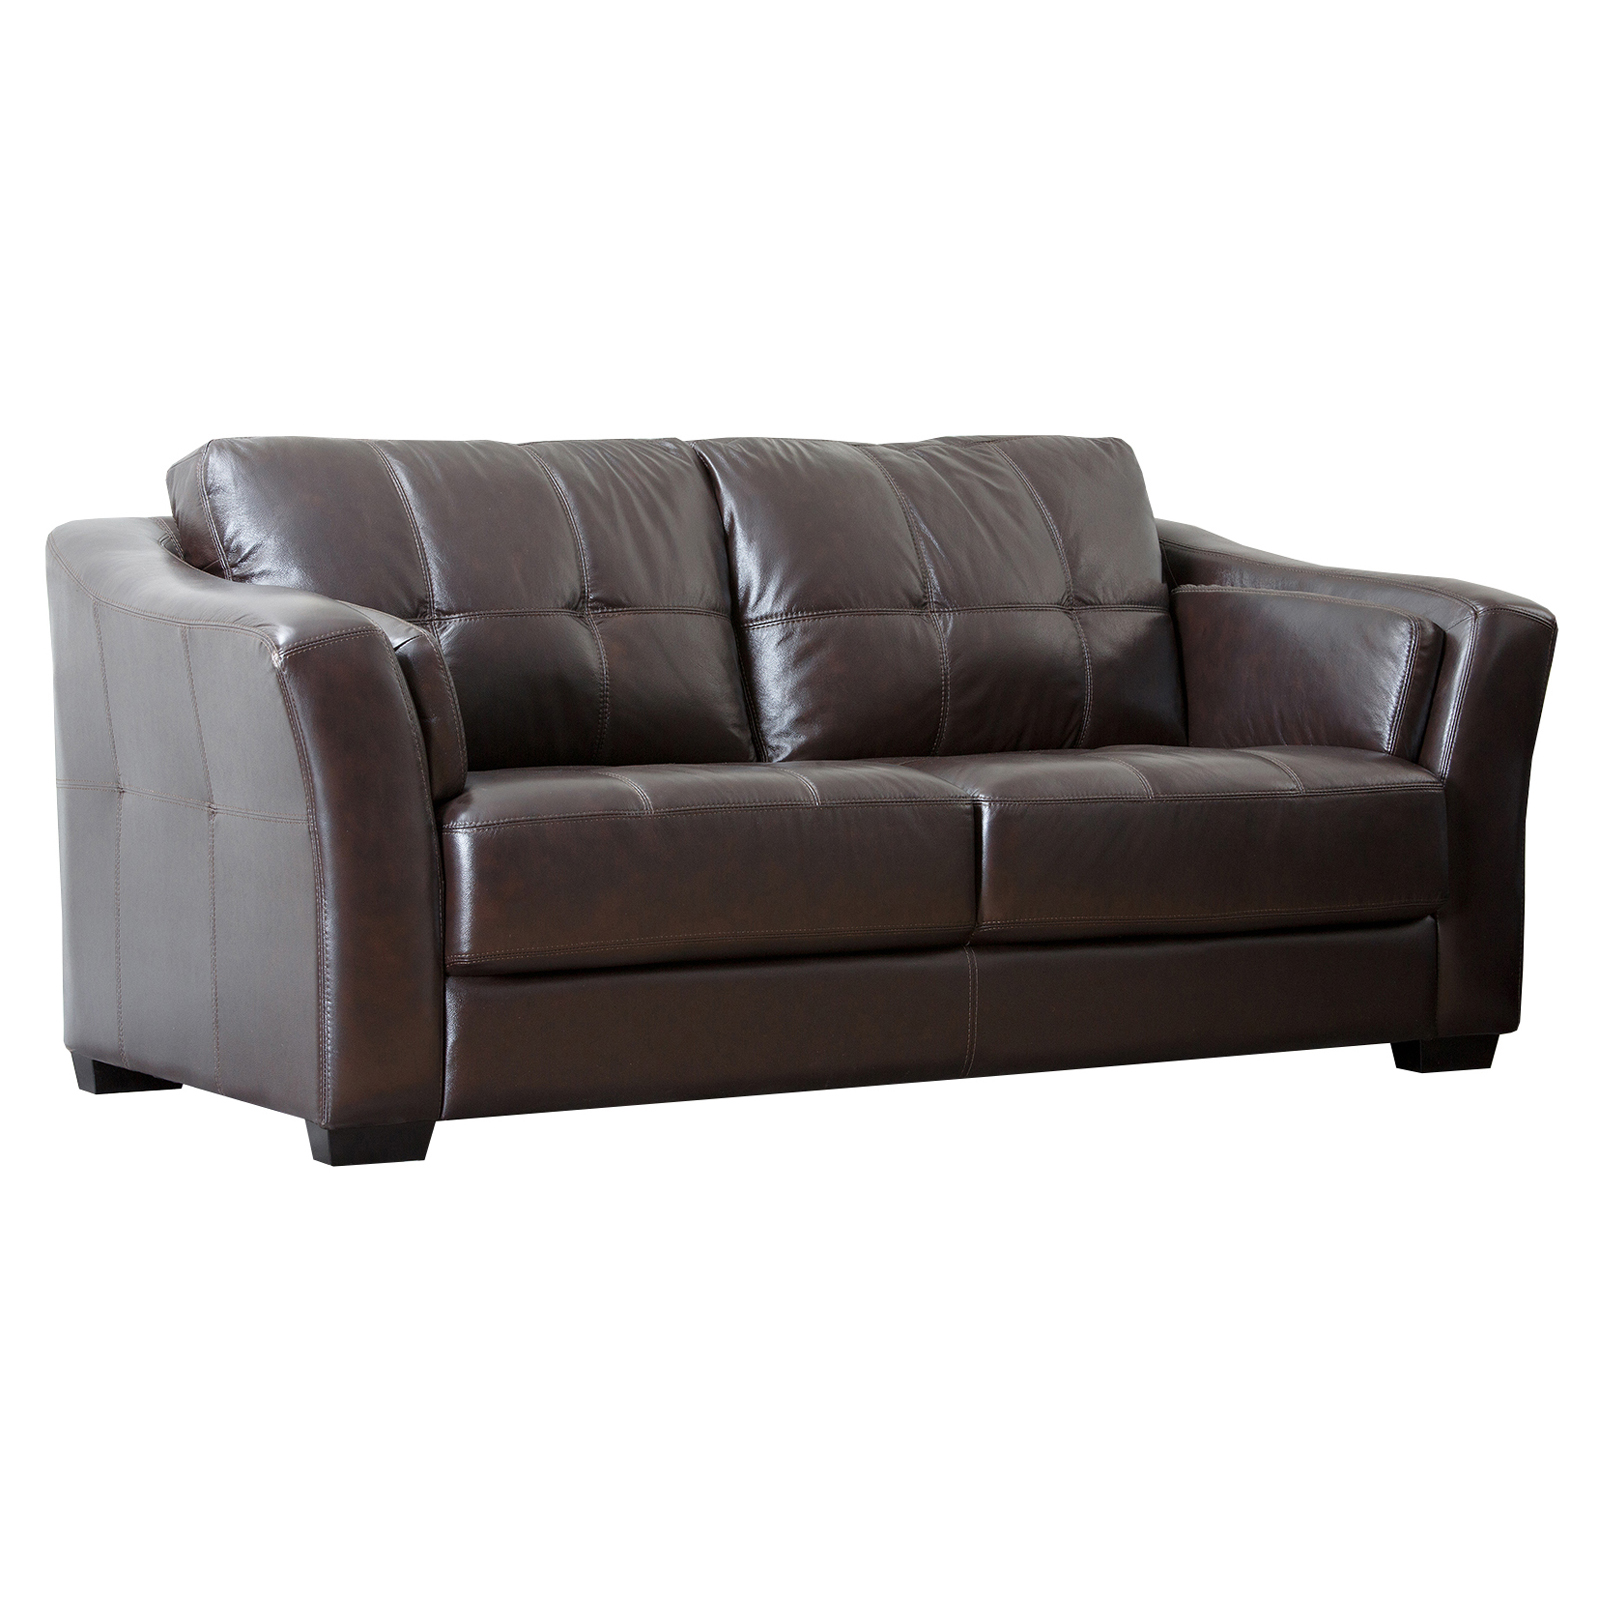 Abbyson Dominica Top Grain Leather Reclining Sofa